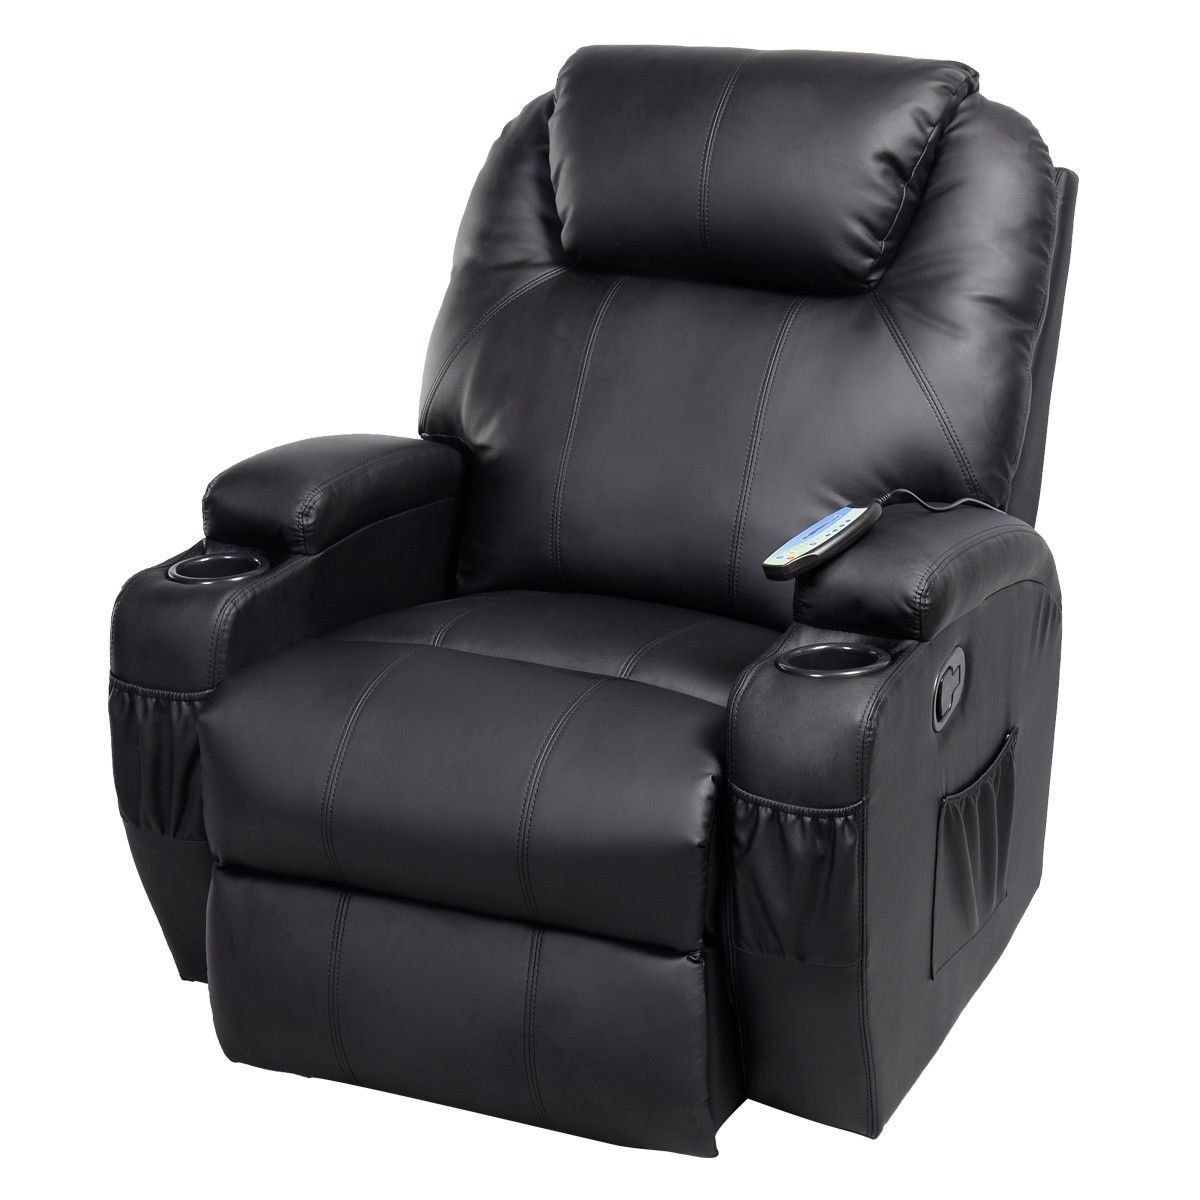 Rocking Sofa Chairs Pertaining To Current Amazon: Ghp Black Sturdy Ergonomic Seating Massage Recliner (View 6 of 15)